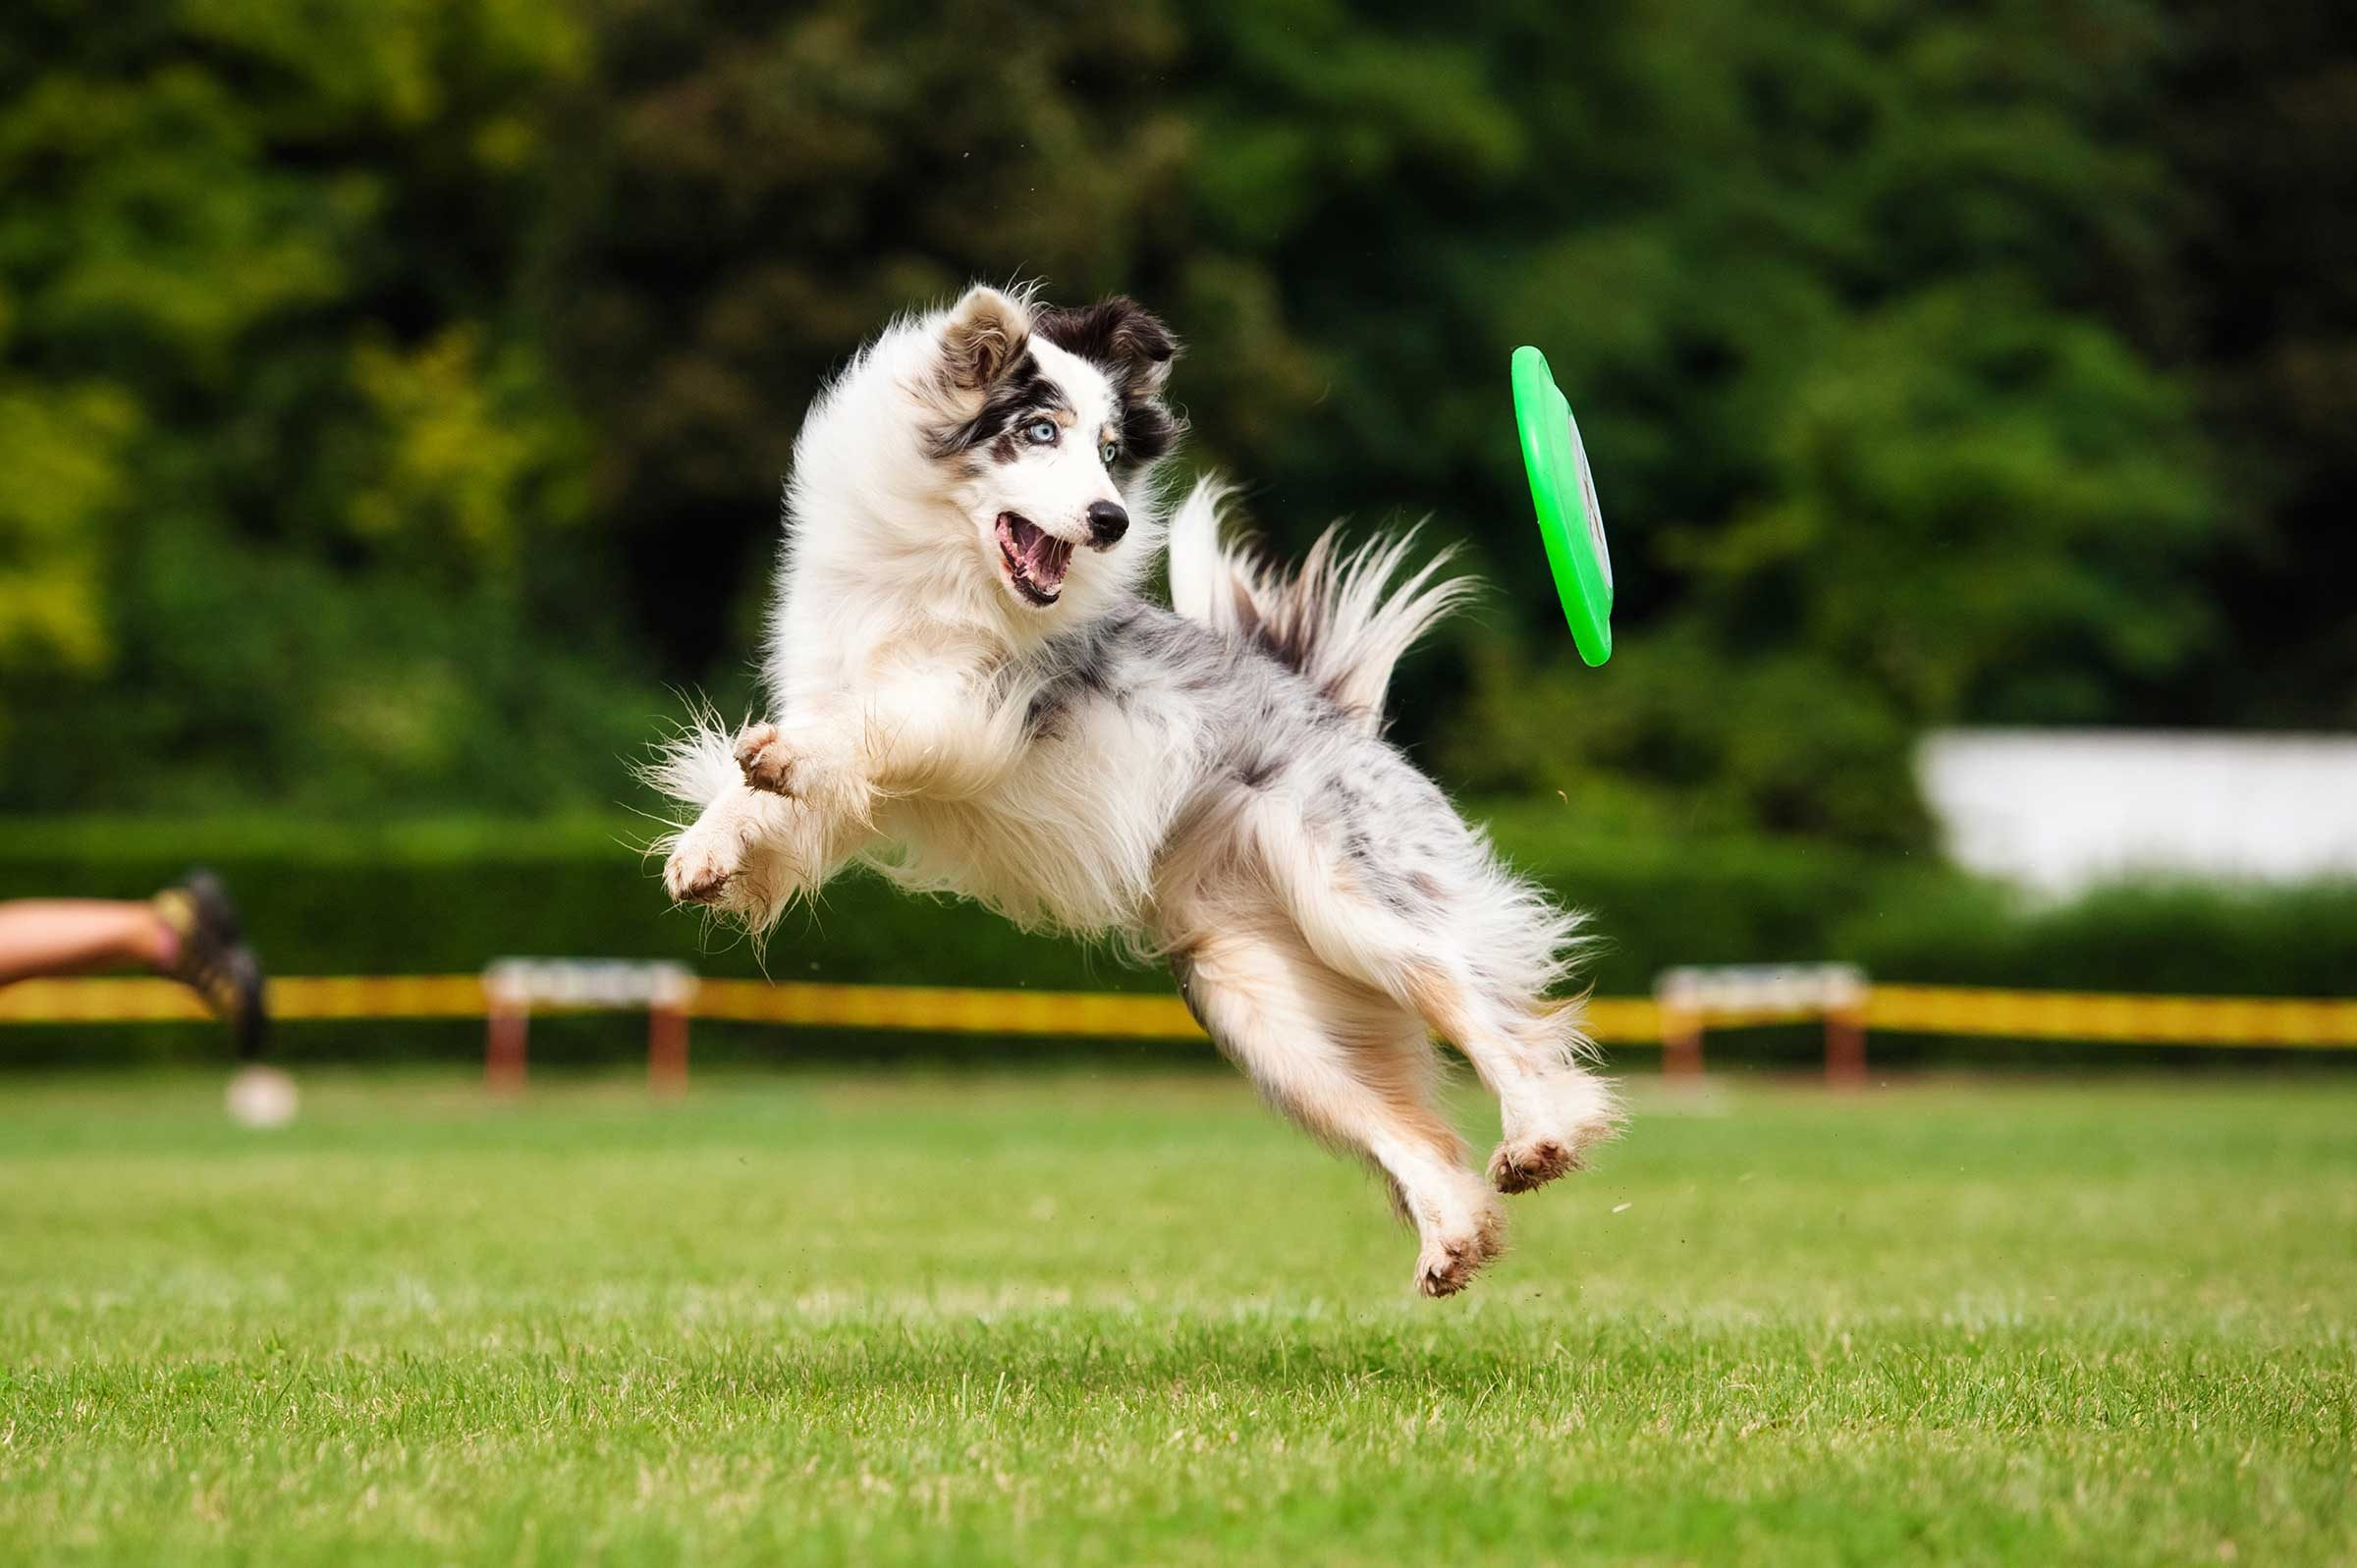 I Love To Fetch And Would Like To Learn How To Catch A Flying Disc